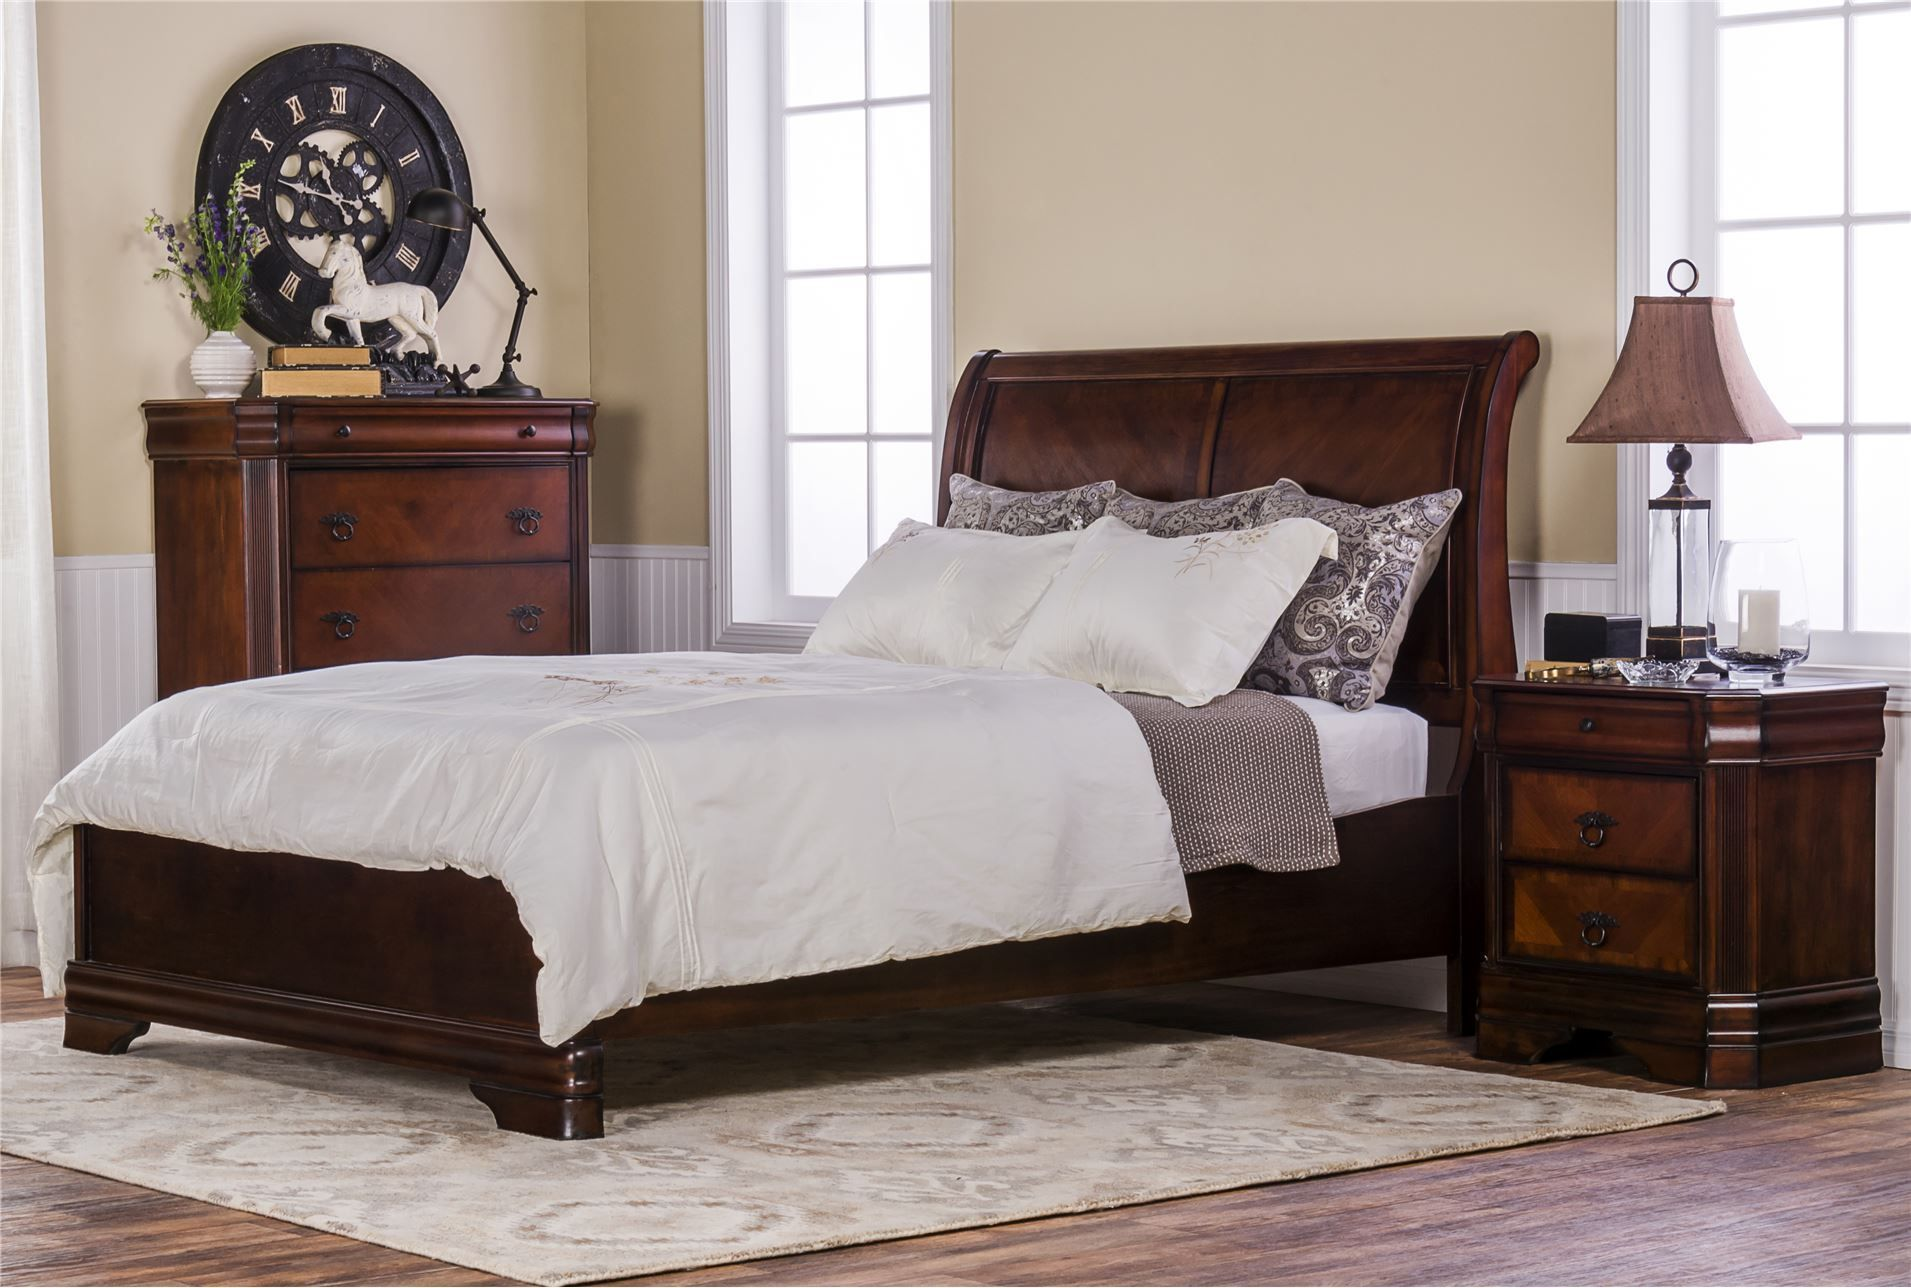 Preston Eastern King Panel Bed | Living Spaces Dimensions: 80"|1911|1288|?|en|2|d69e0680bca179506415aa3e388f3a3c|False|UNLIKELY|0.3246488571166992